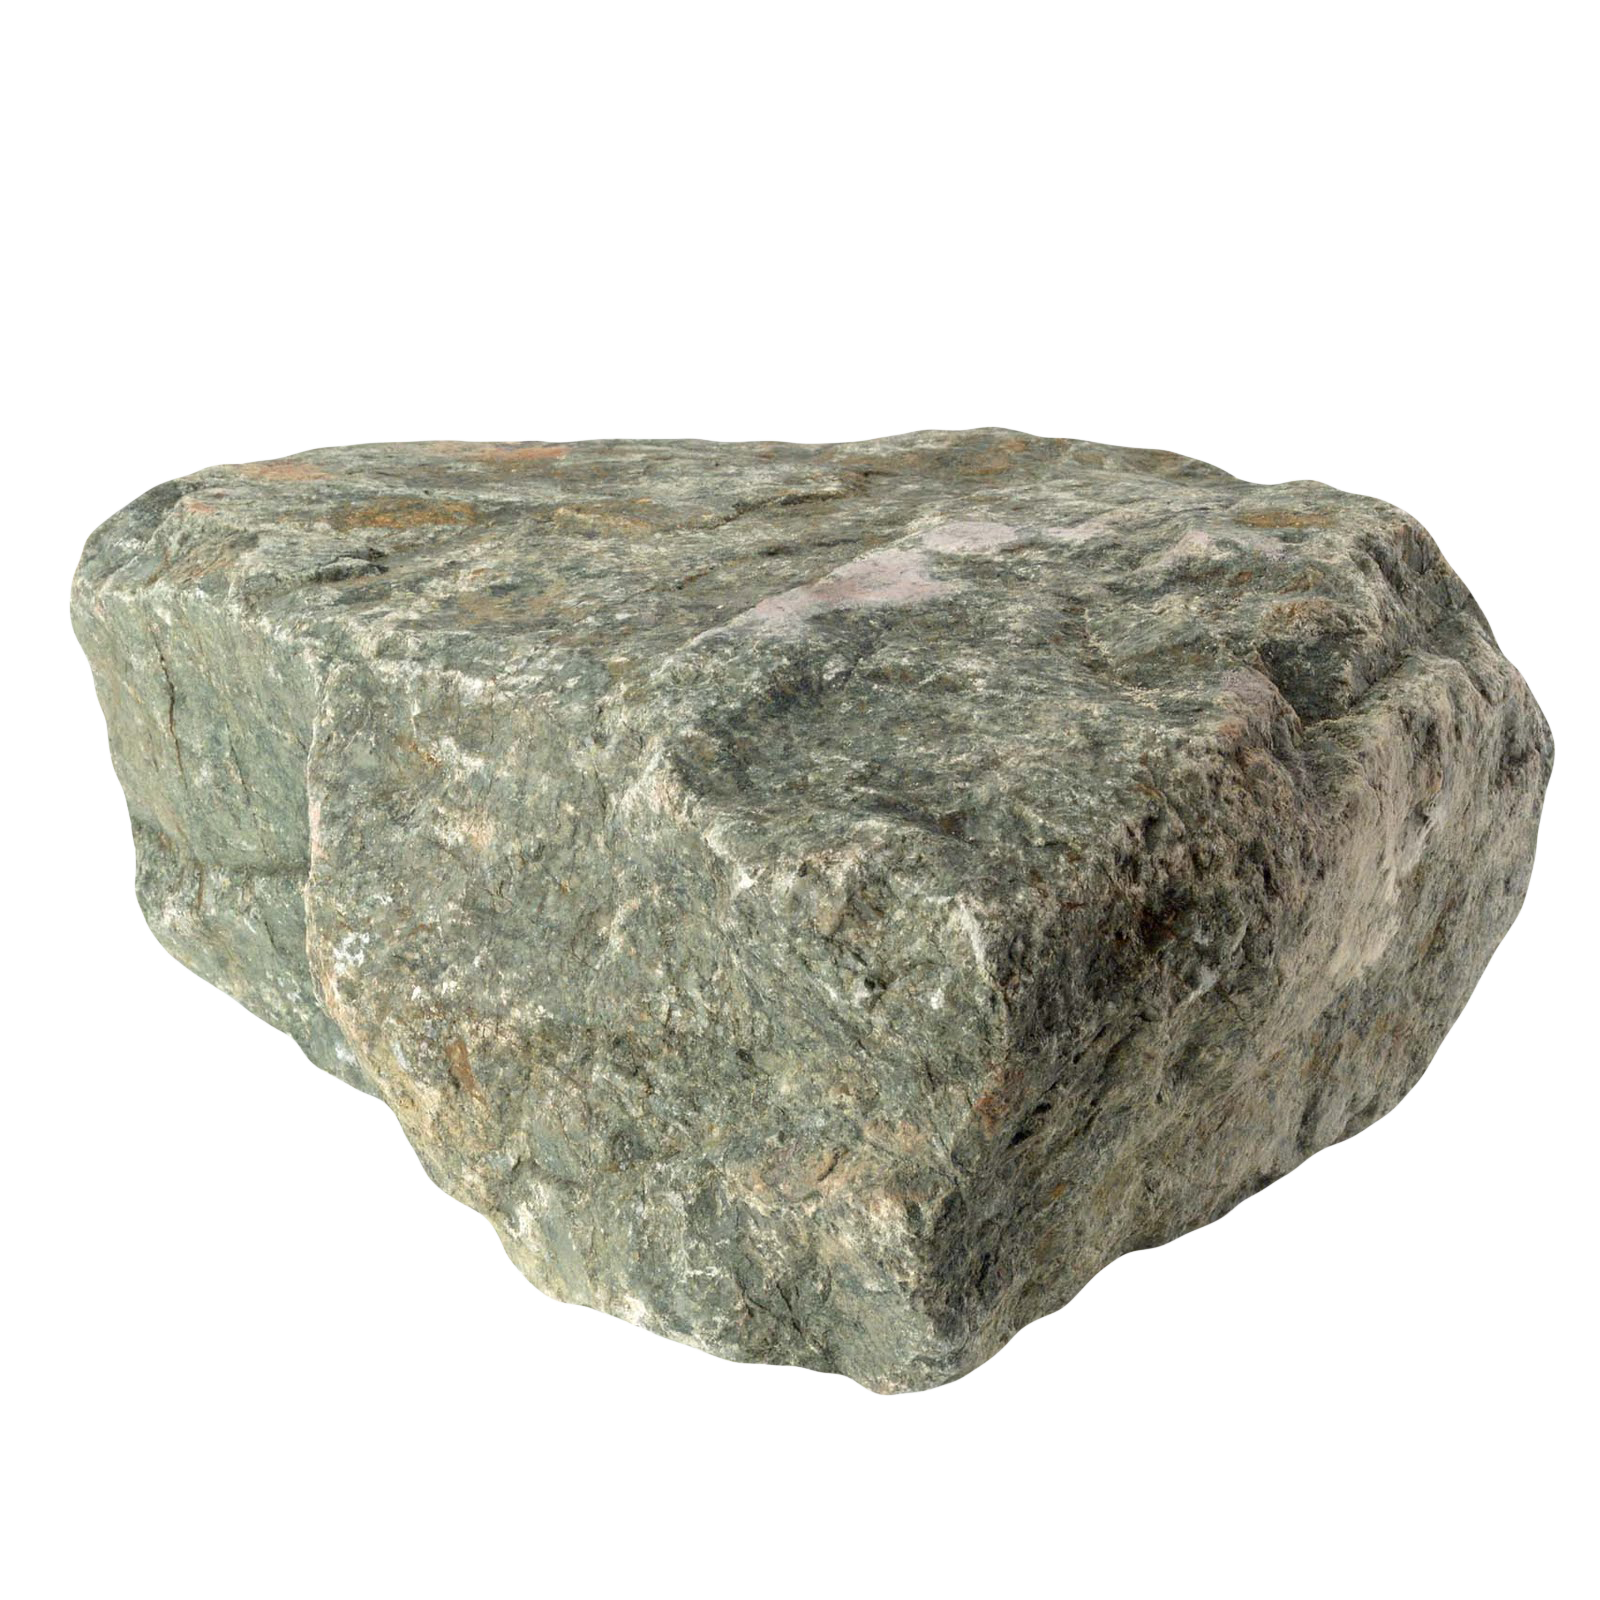 Boulder drawing limestone rock. Stone hd png transparent